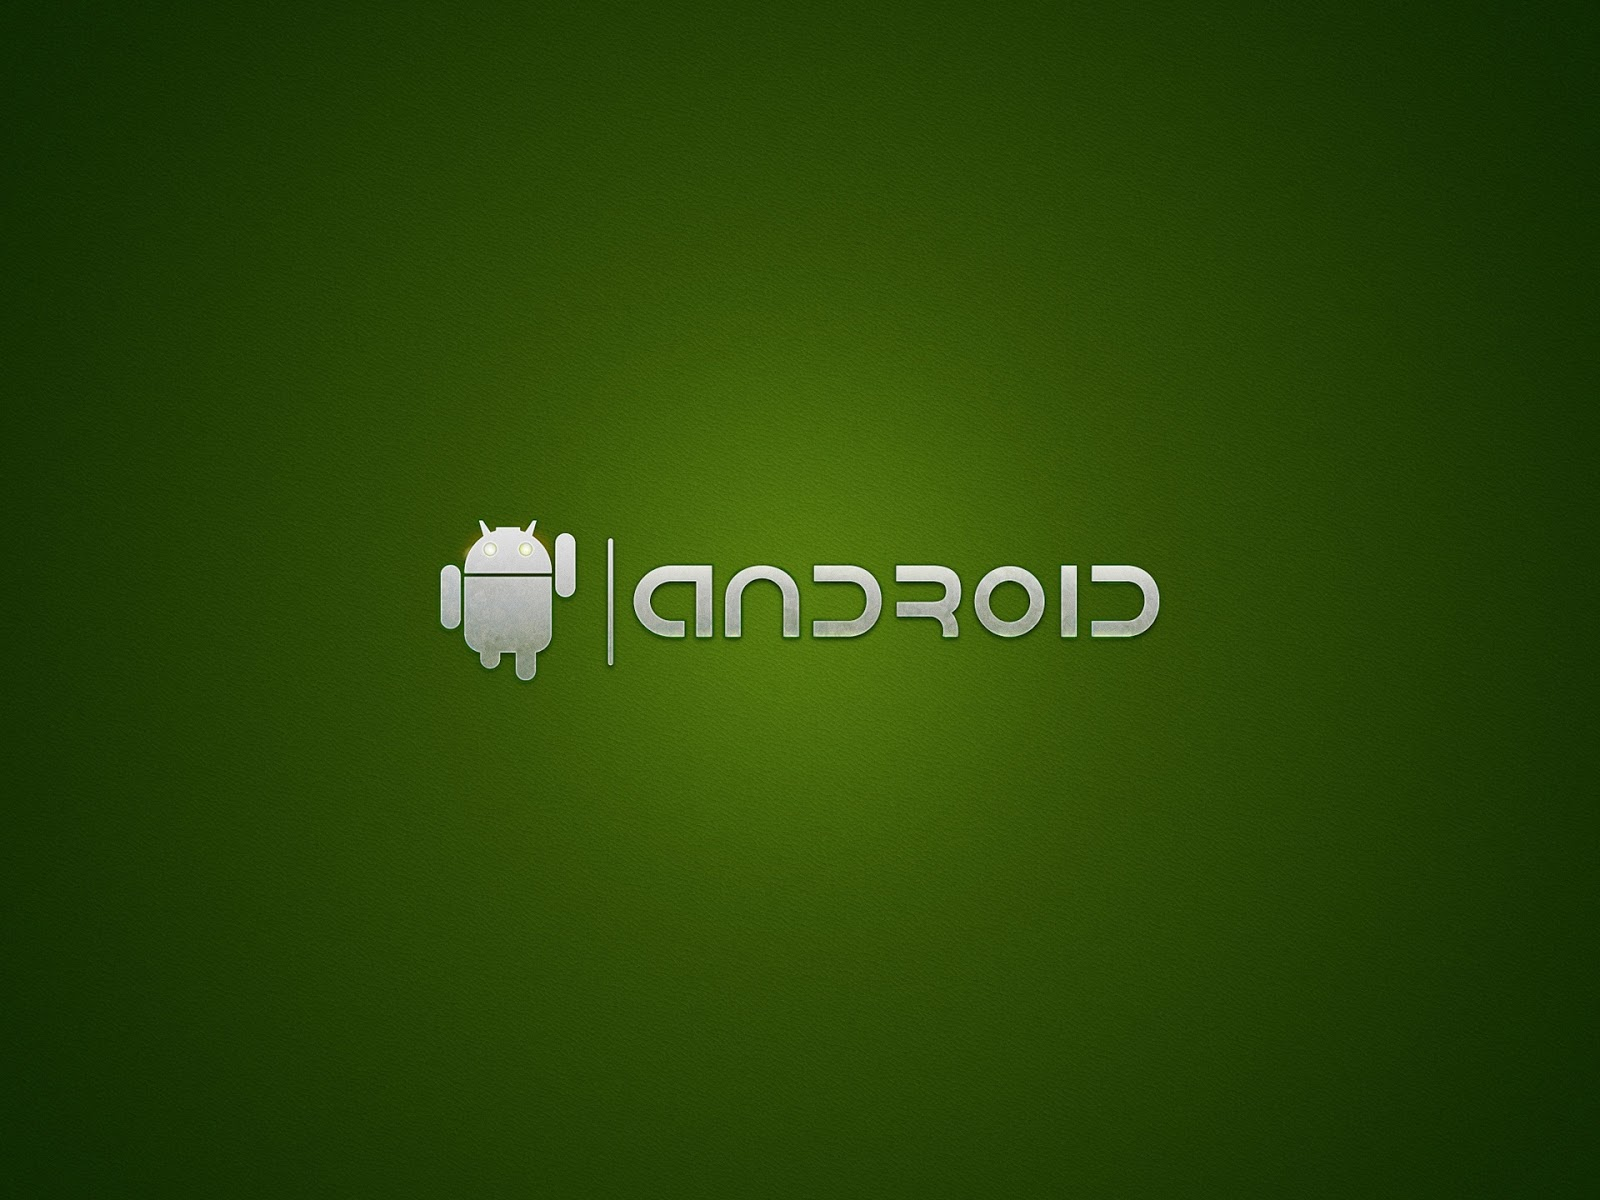 Free Green Android Wallpaper Widescreen HD